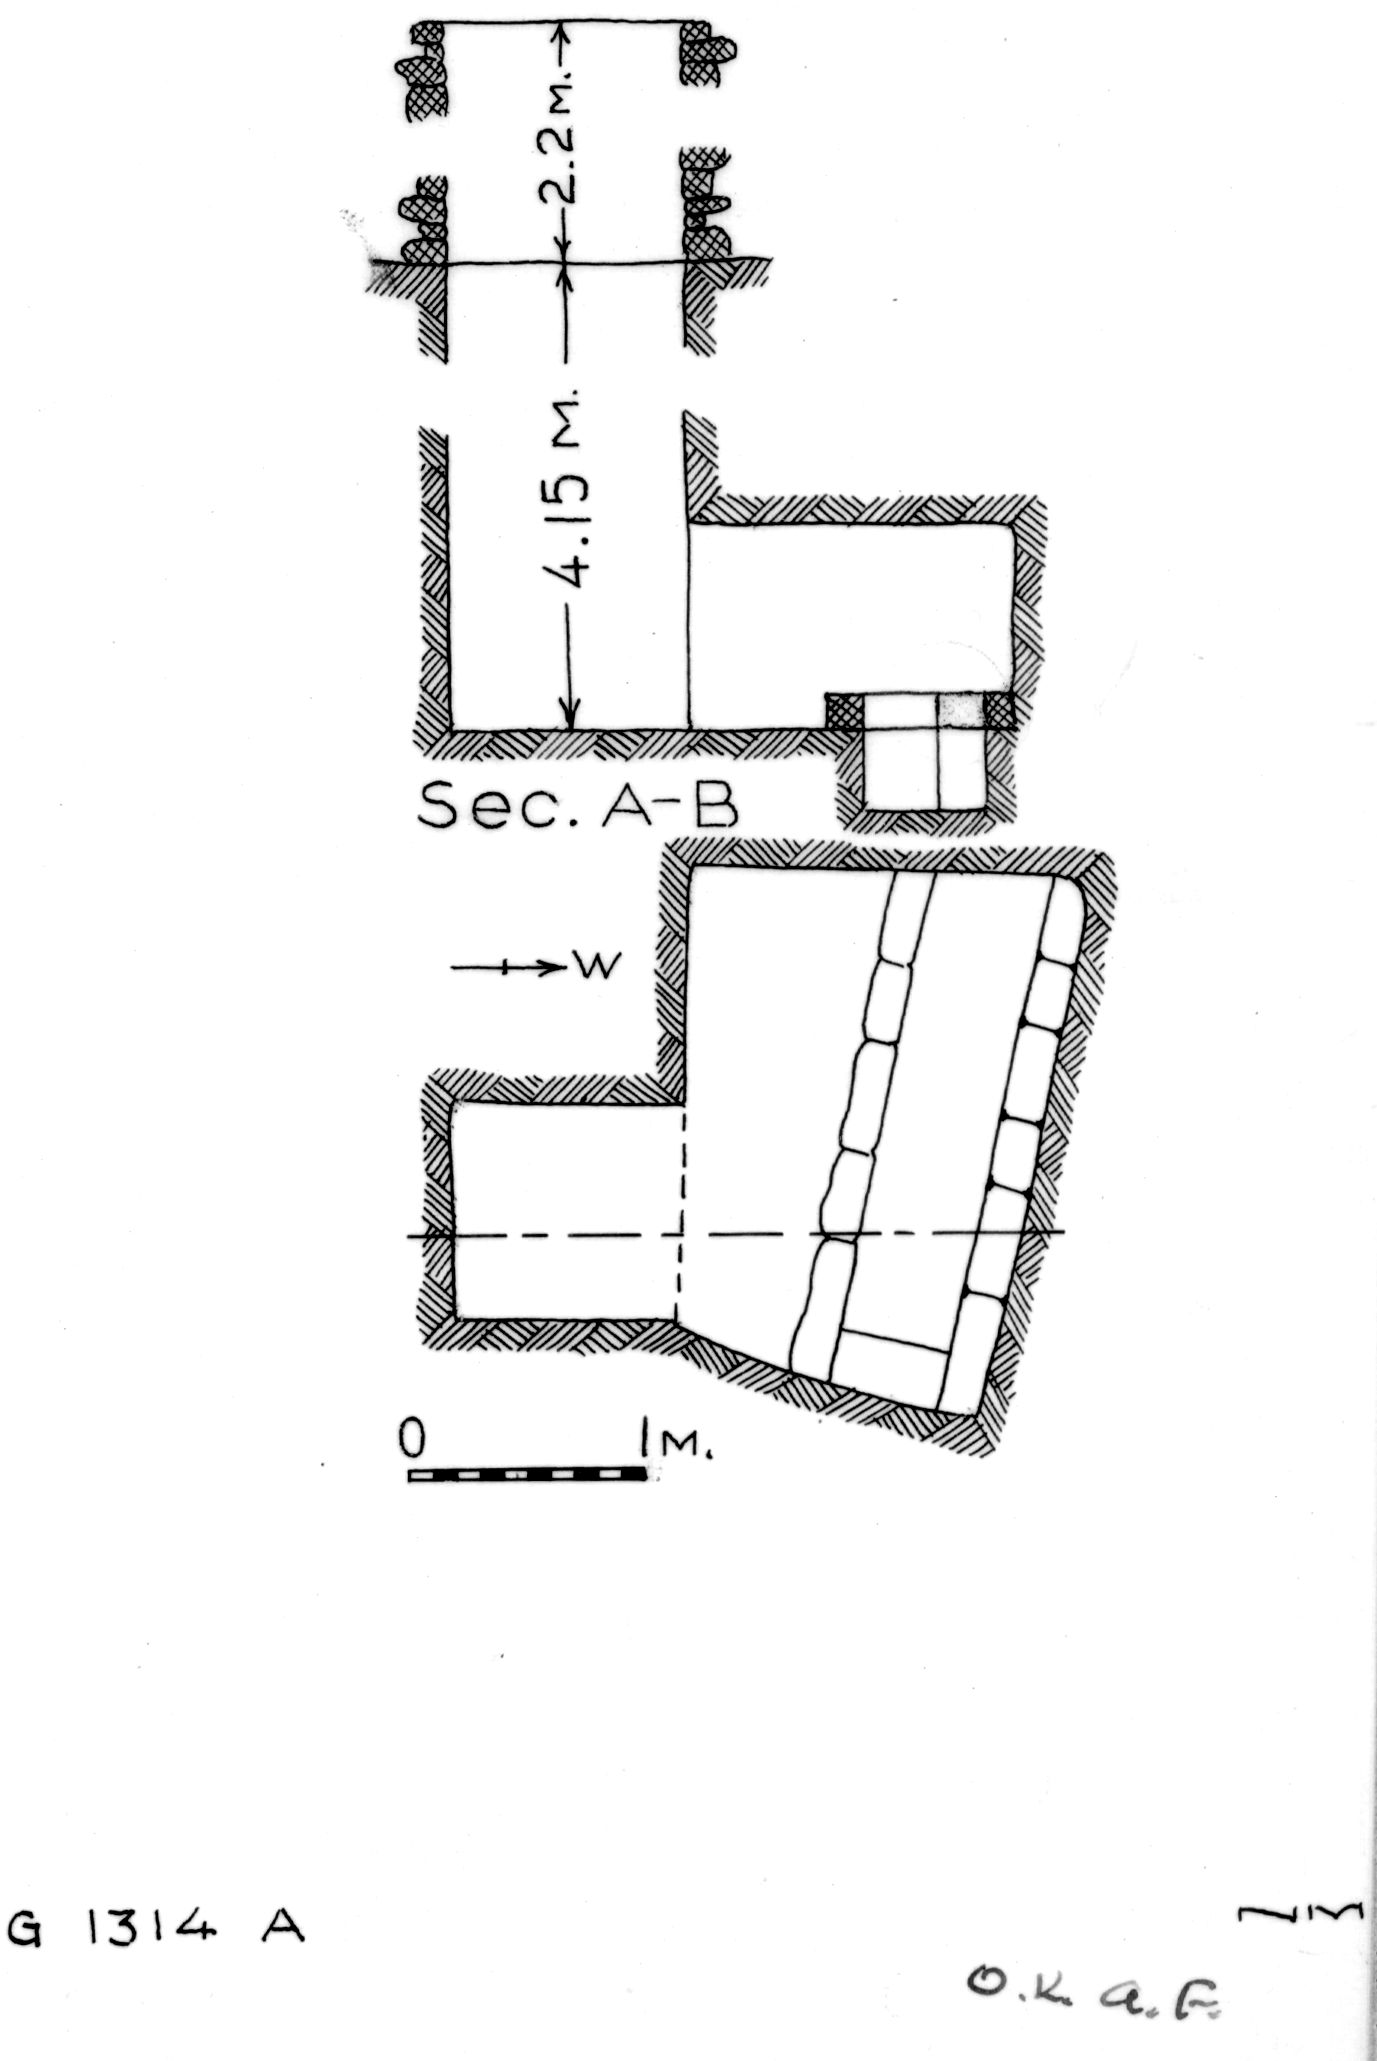 Maps and plans: G 1314, Shaft A